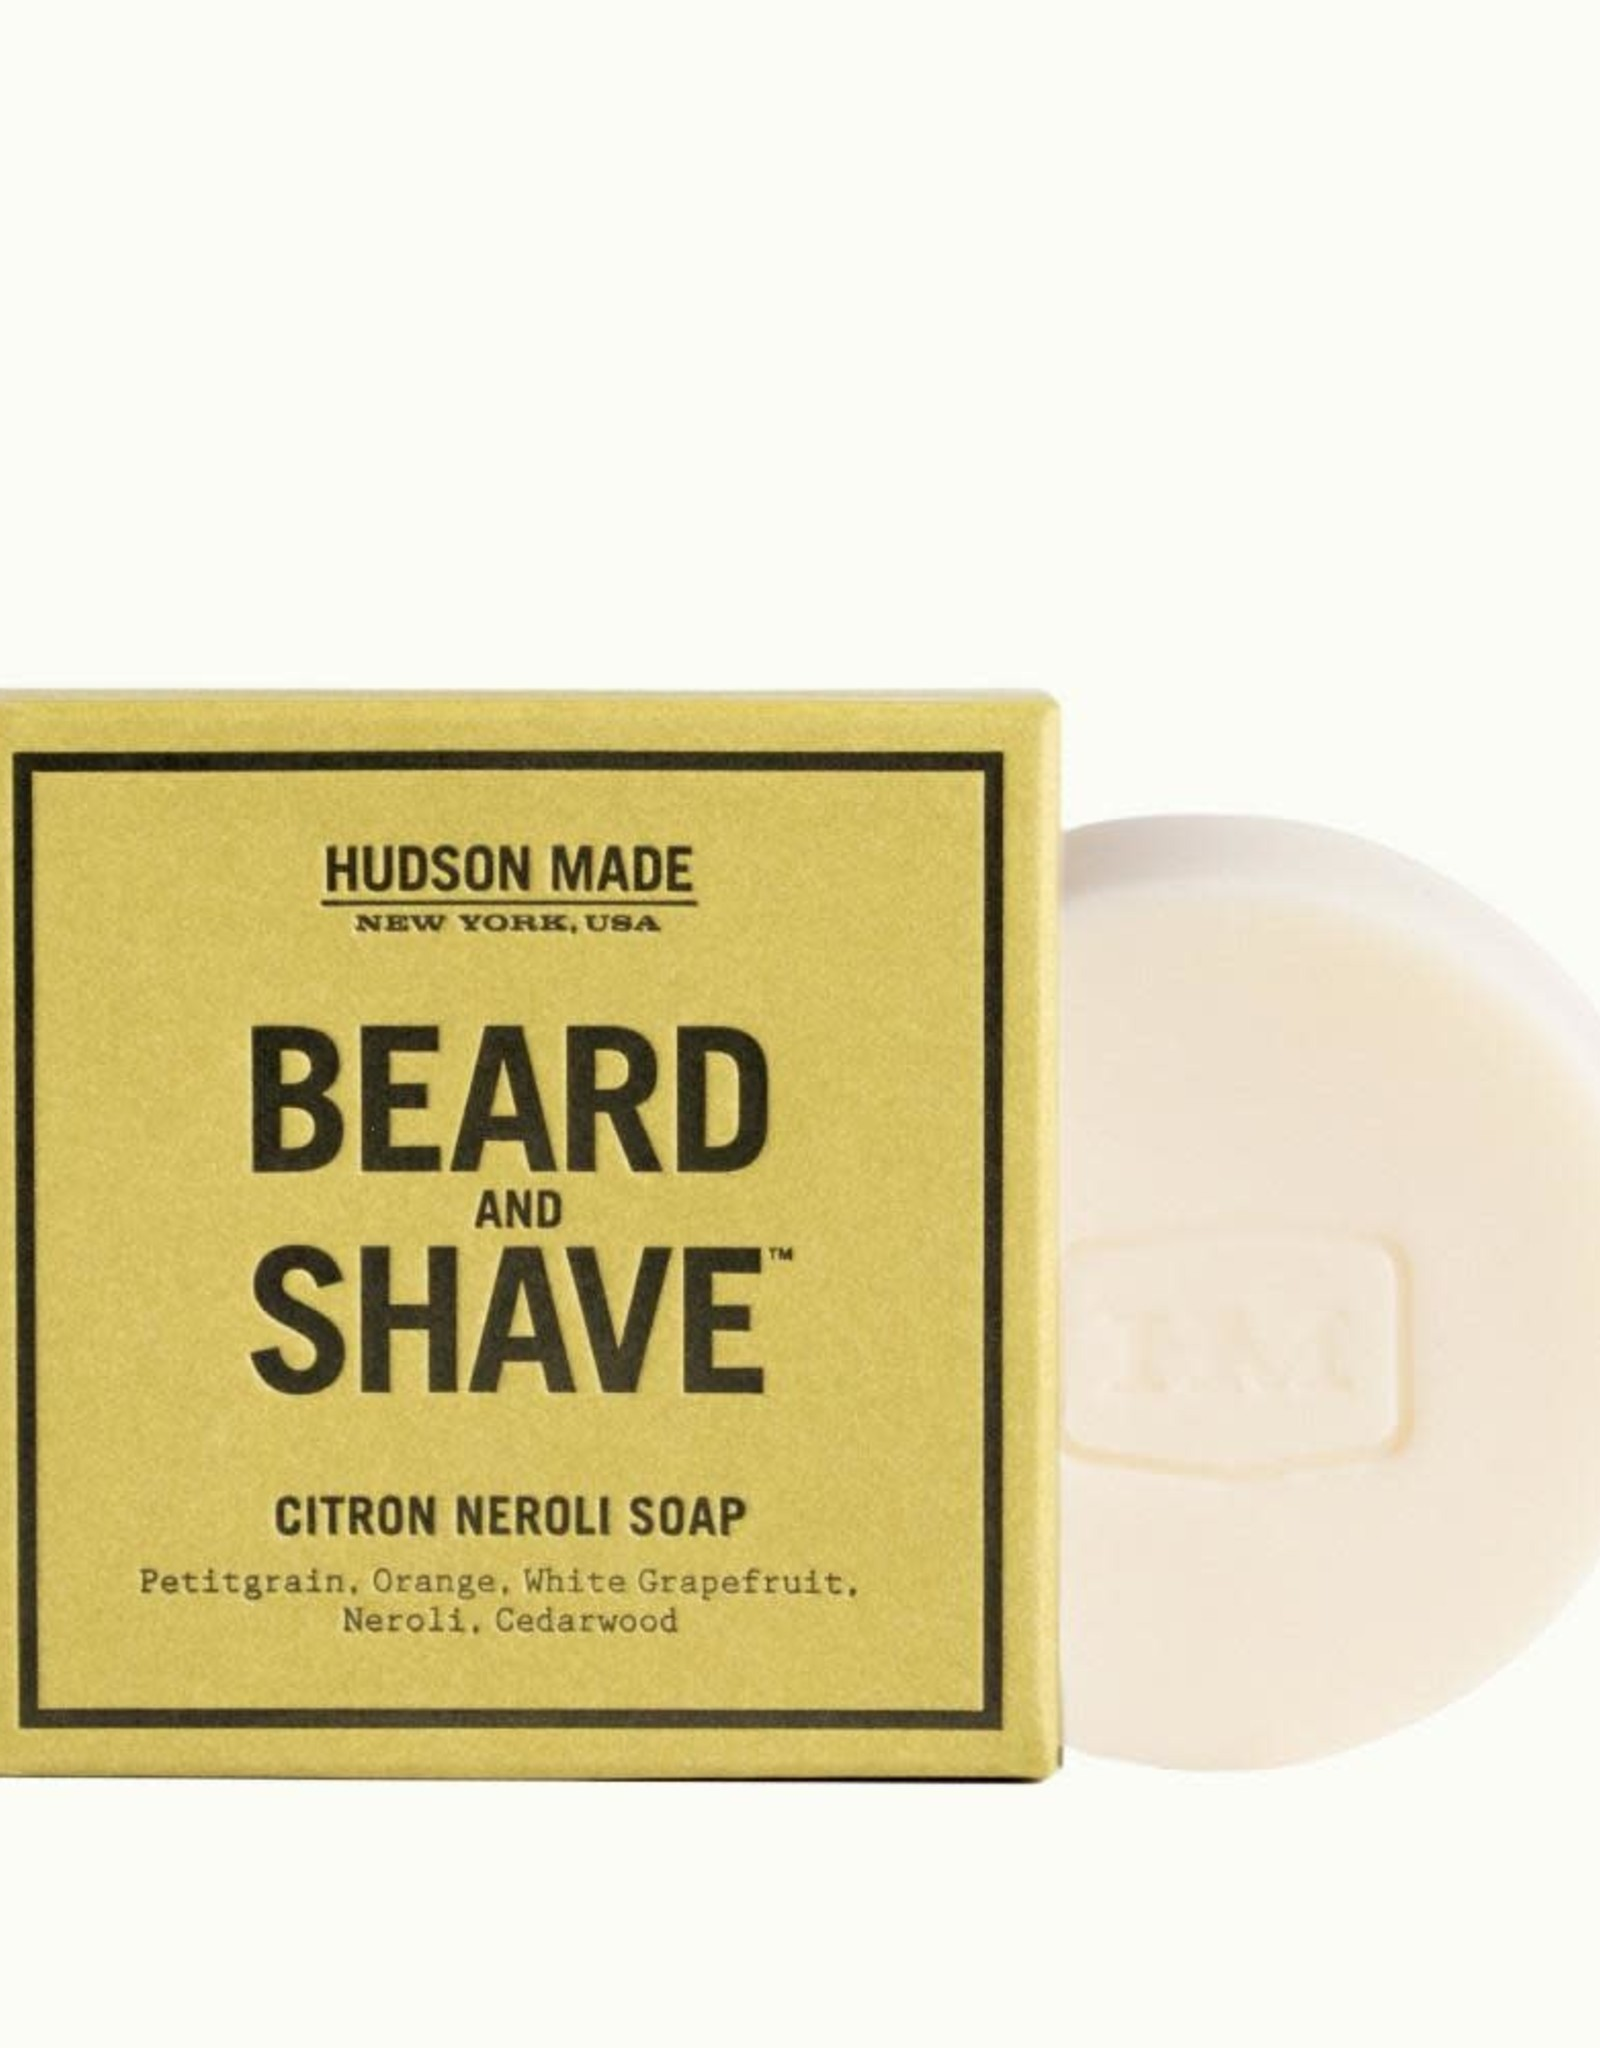 Hudson Made Inc. Citron Neroli Soap